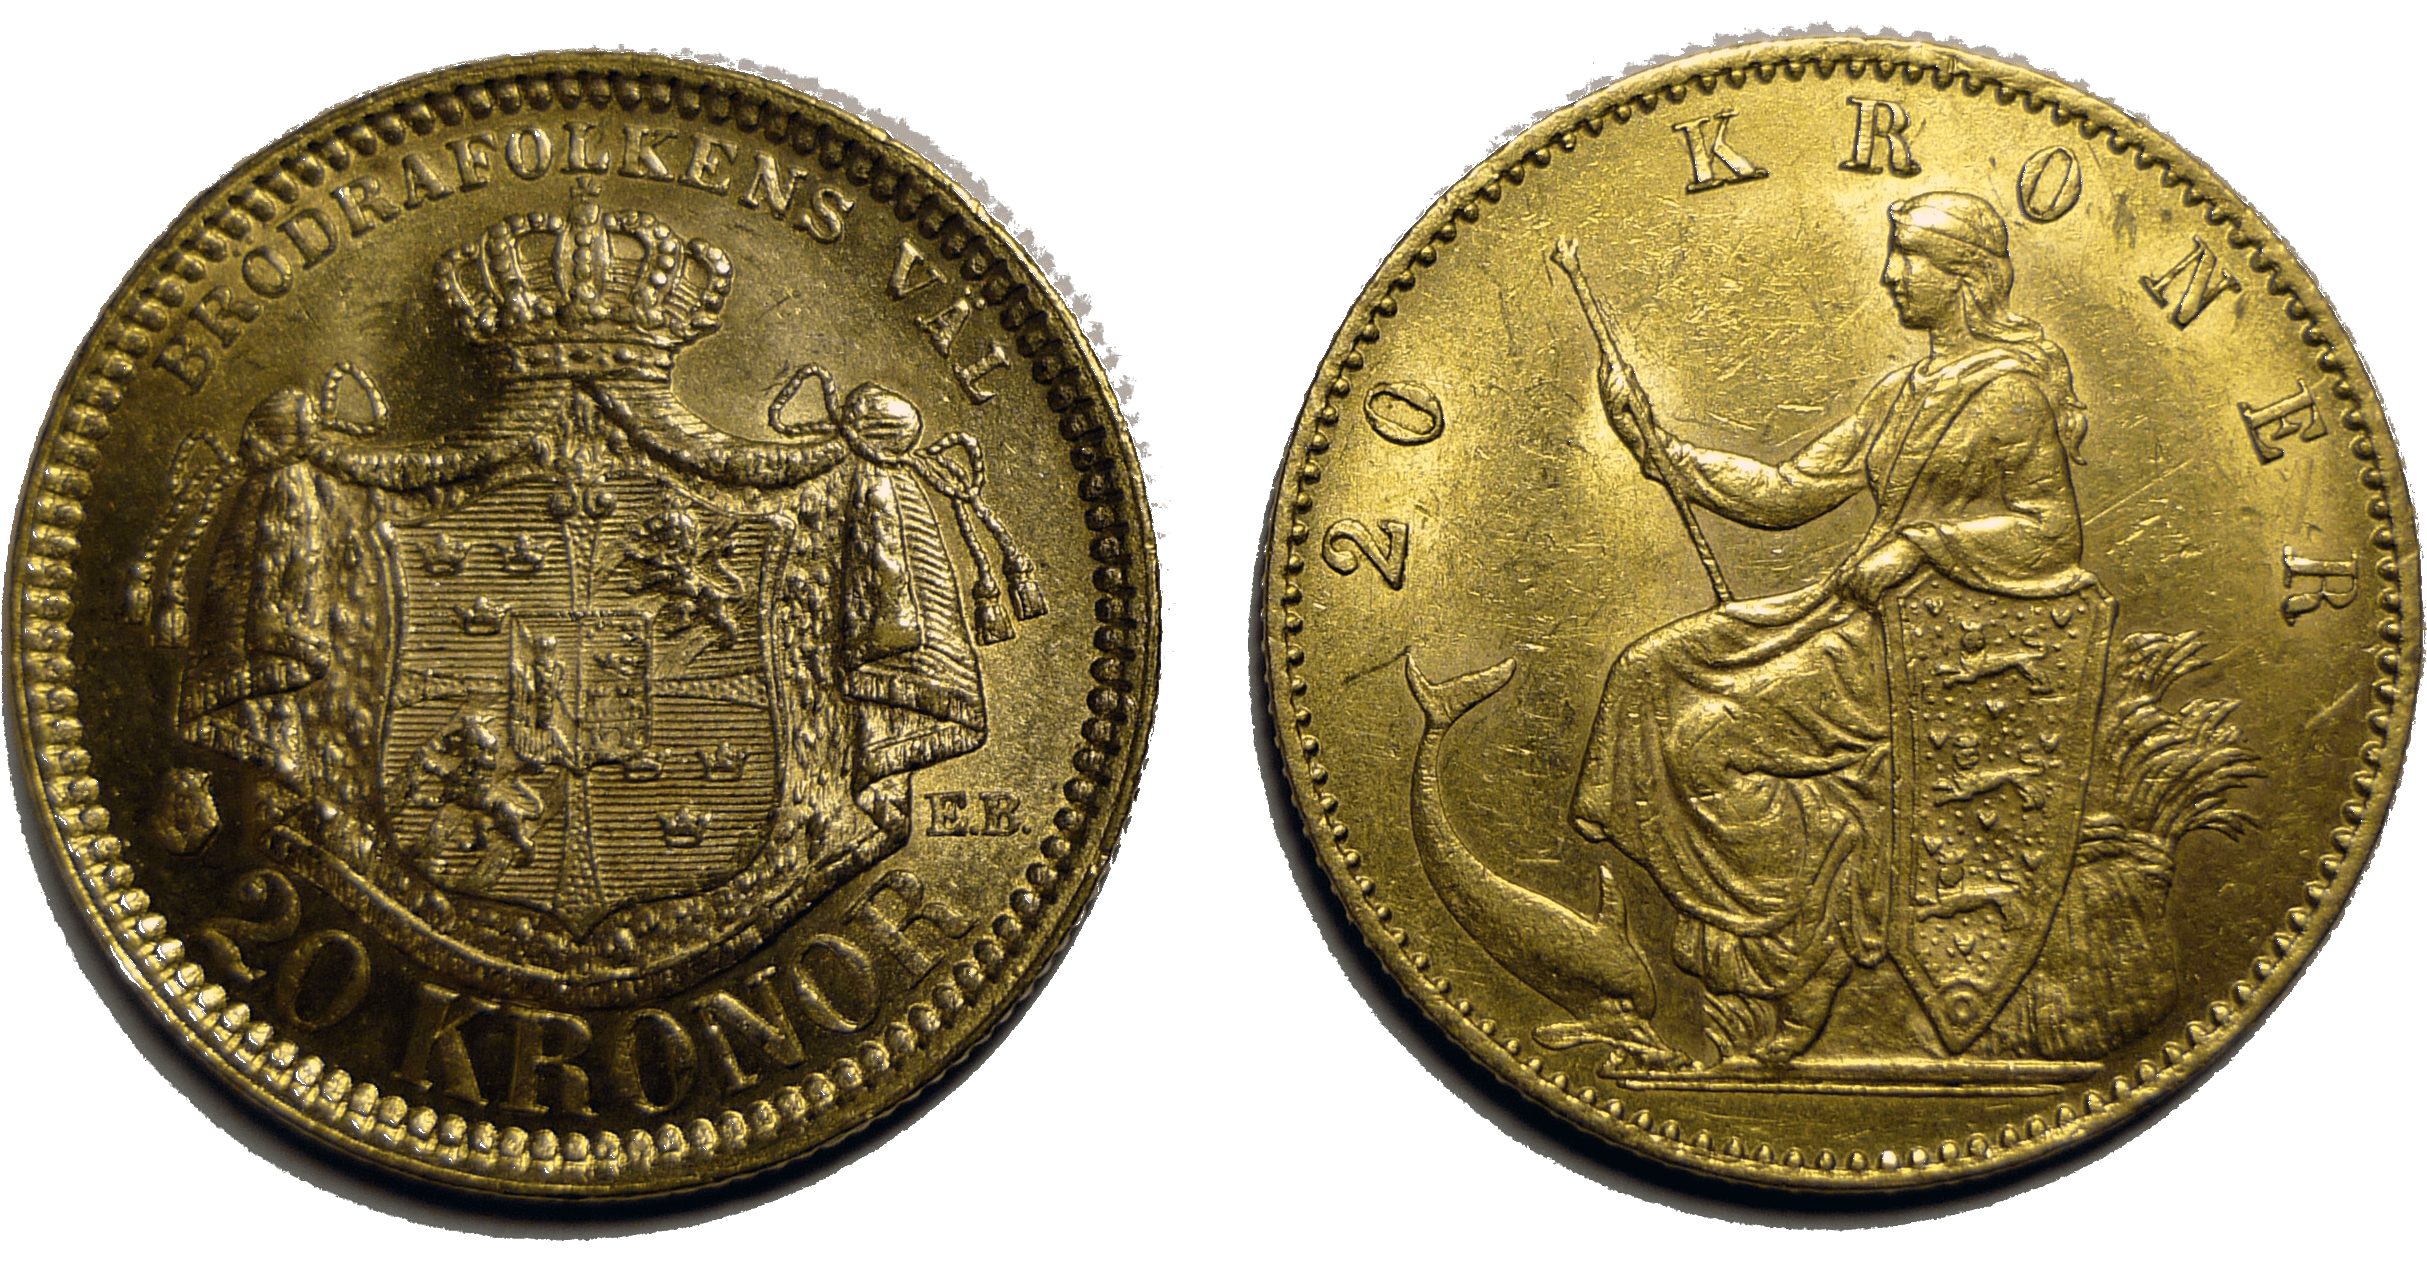 kronor gold coins. Coin clipart ancient coin